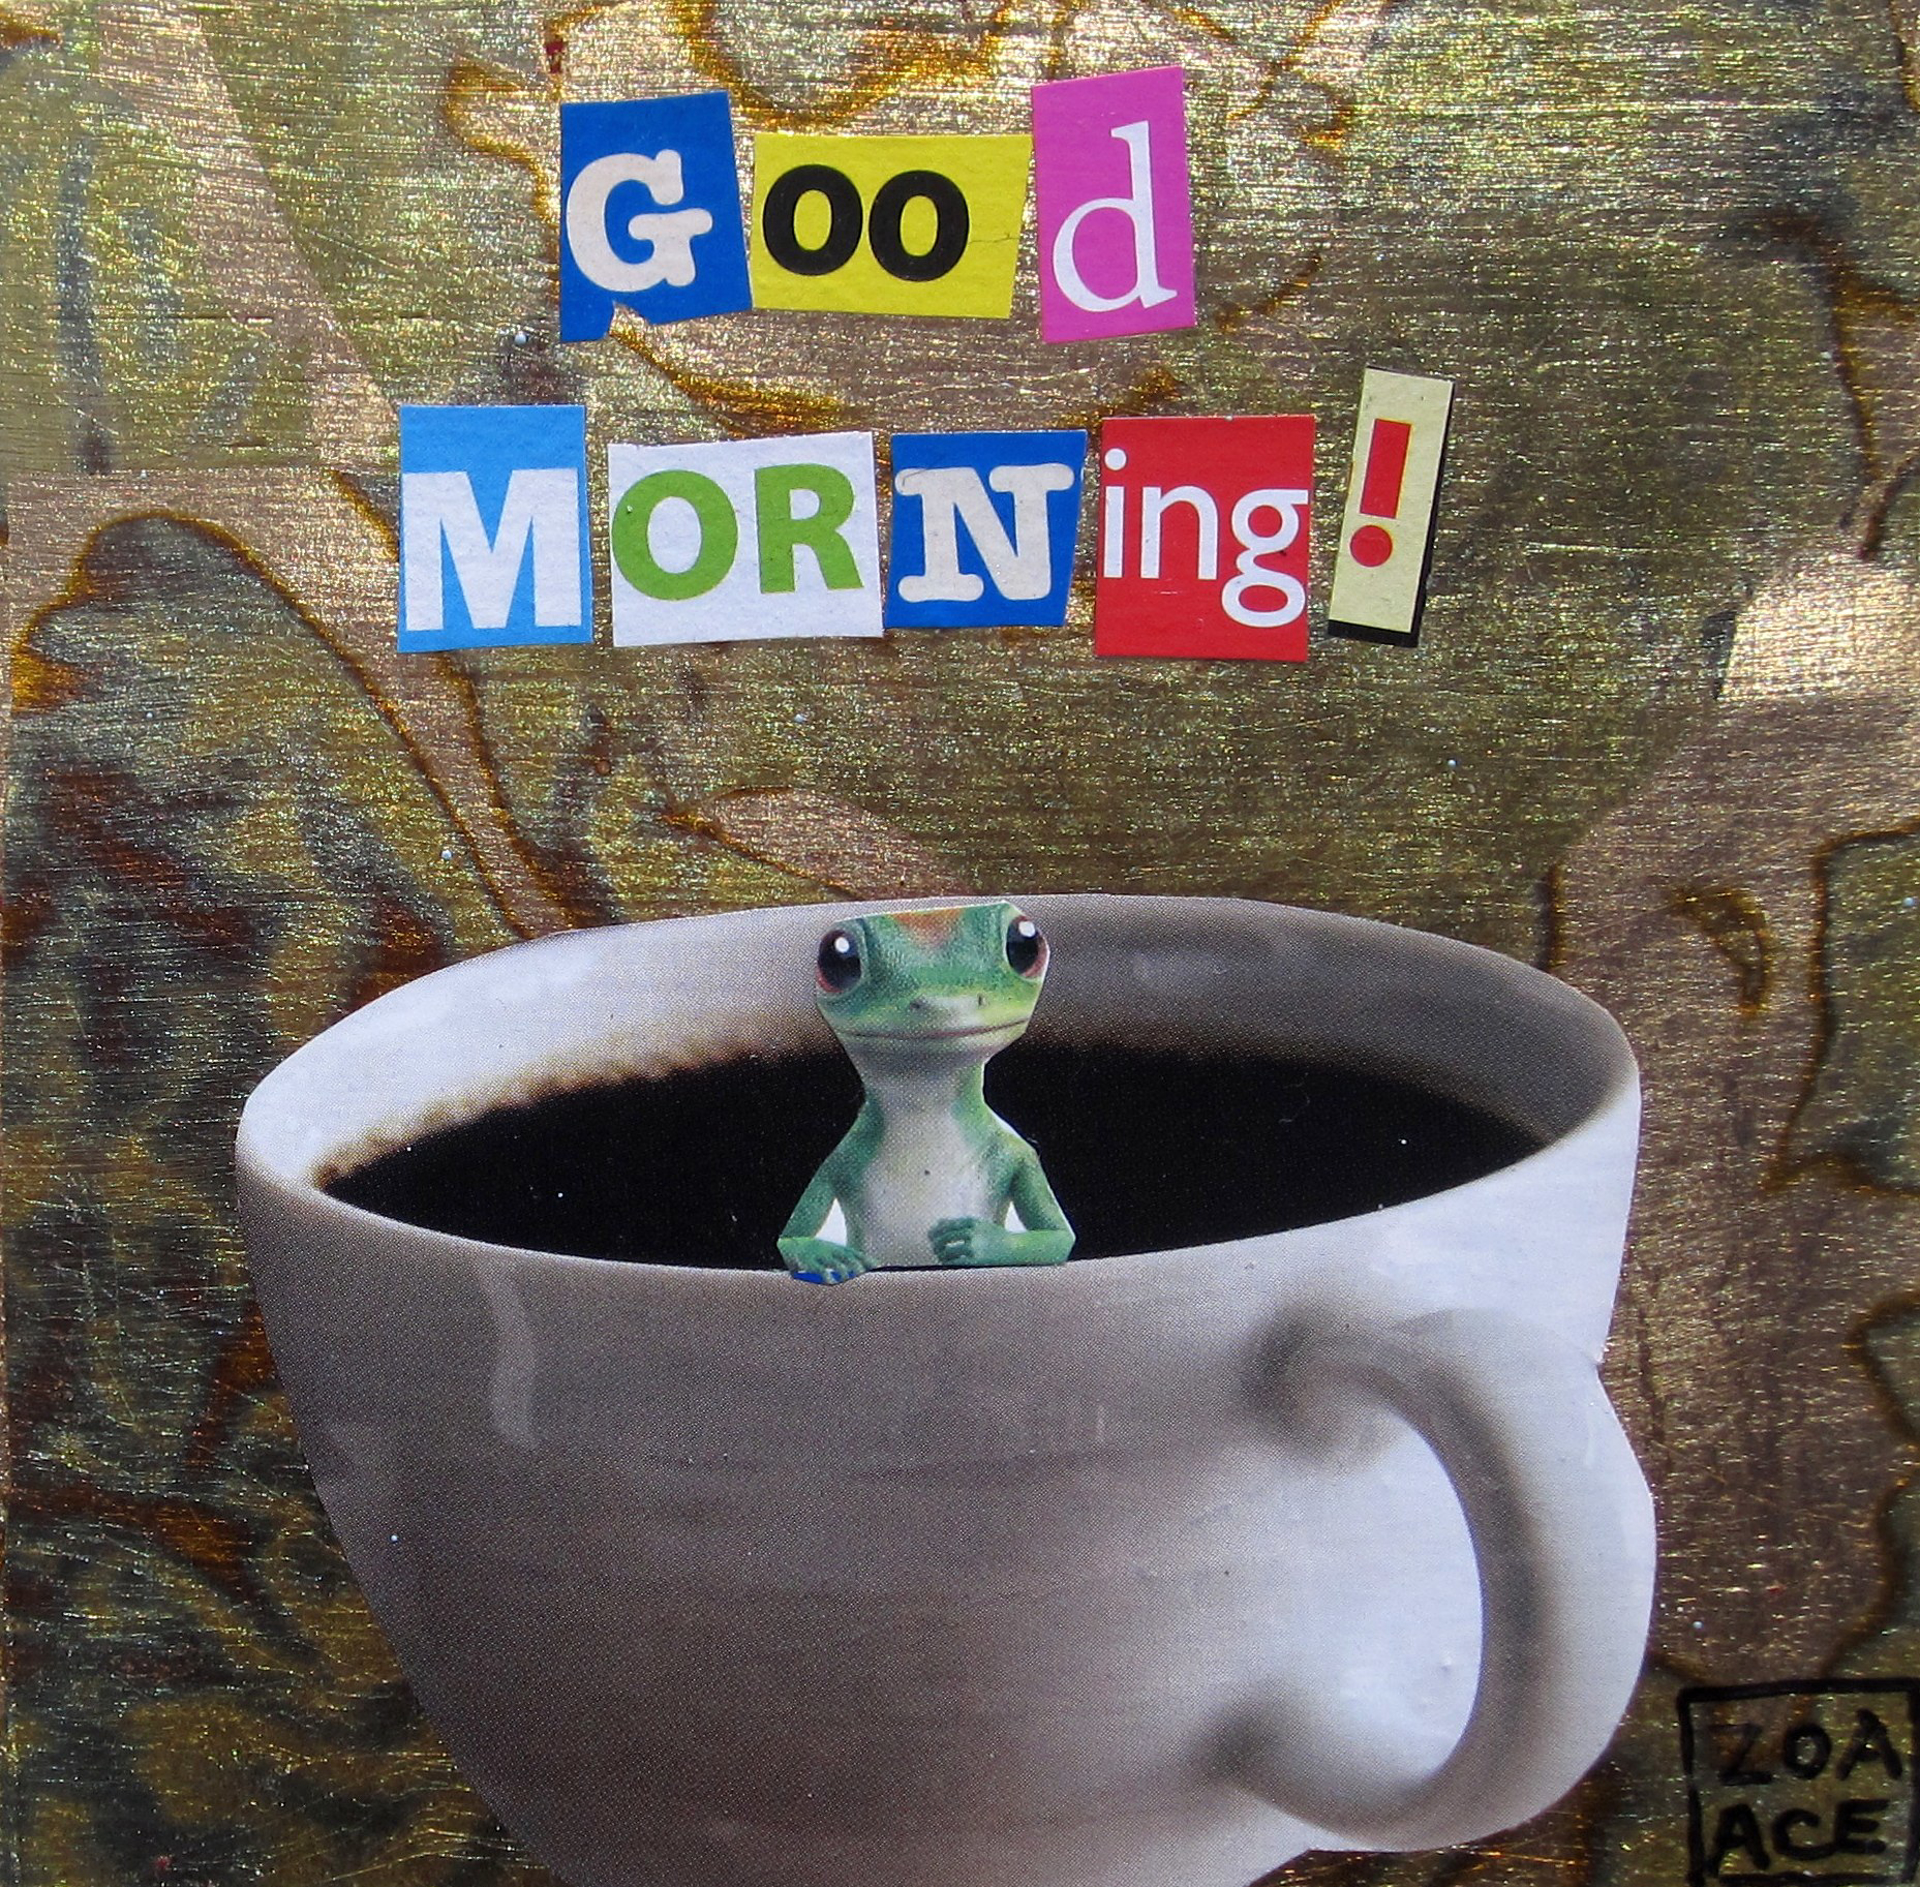 Good Morning by Zoa Ace